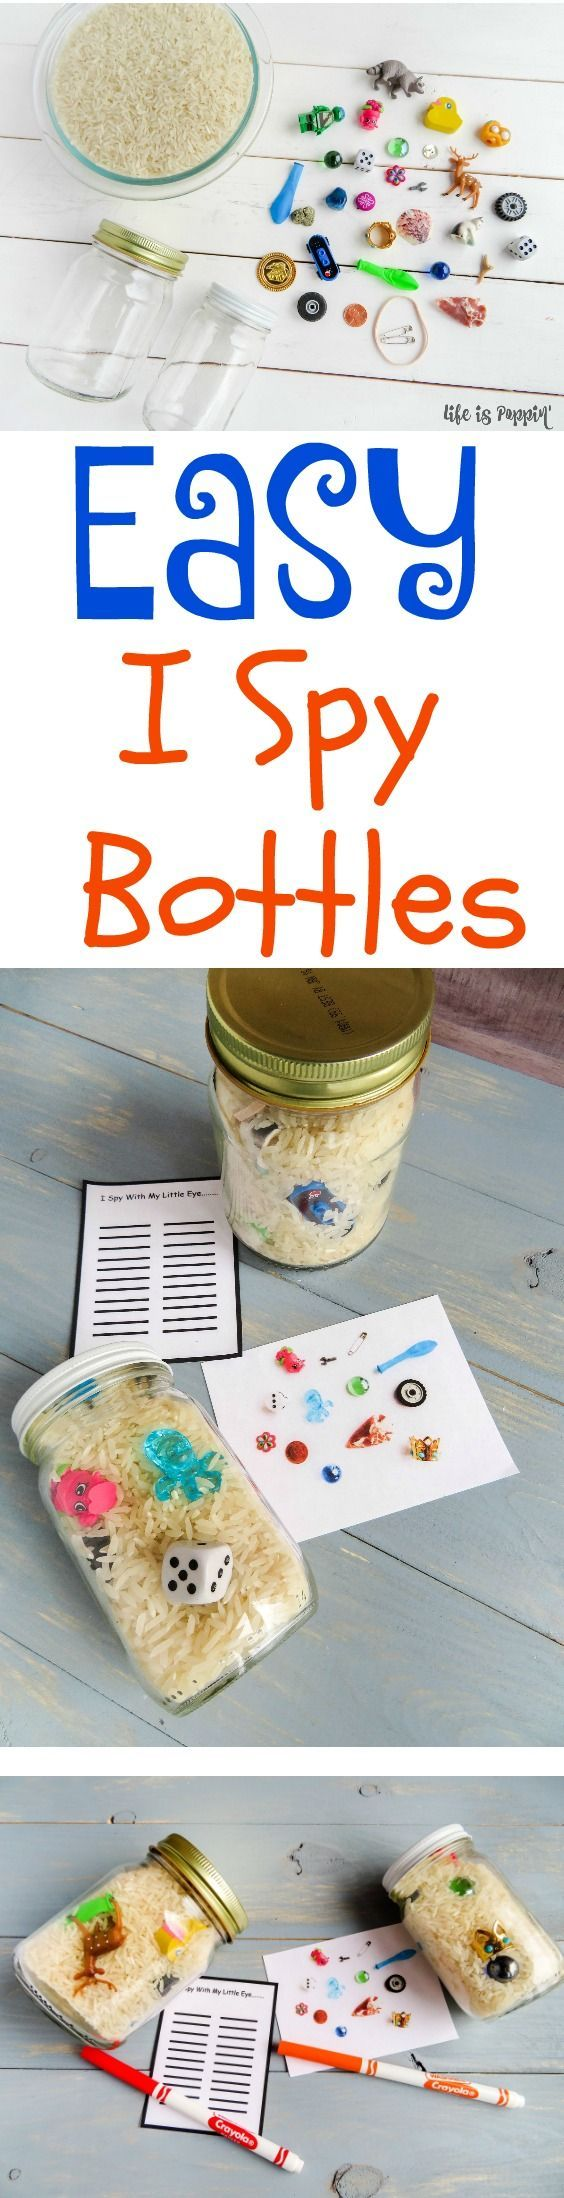 Making your own I Spy Bottles has never been easier! I have put together a step by step tutorial so that you can make your very own. These I Spy Bottles are perfect for road trips, quiet play, classro (Bottle Bag Sensory Play)